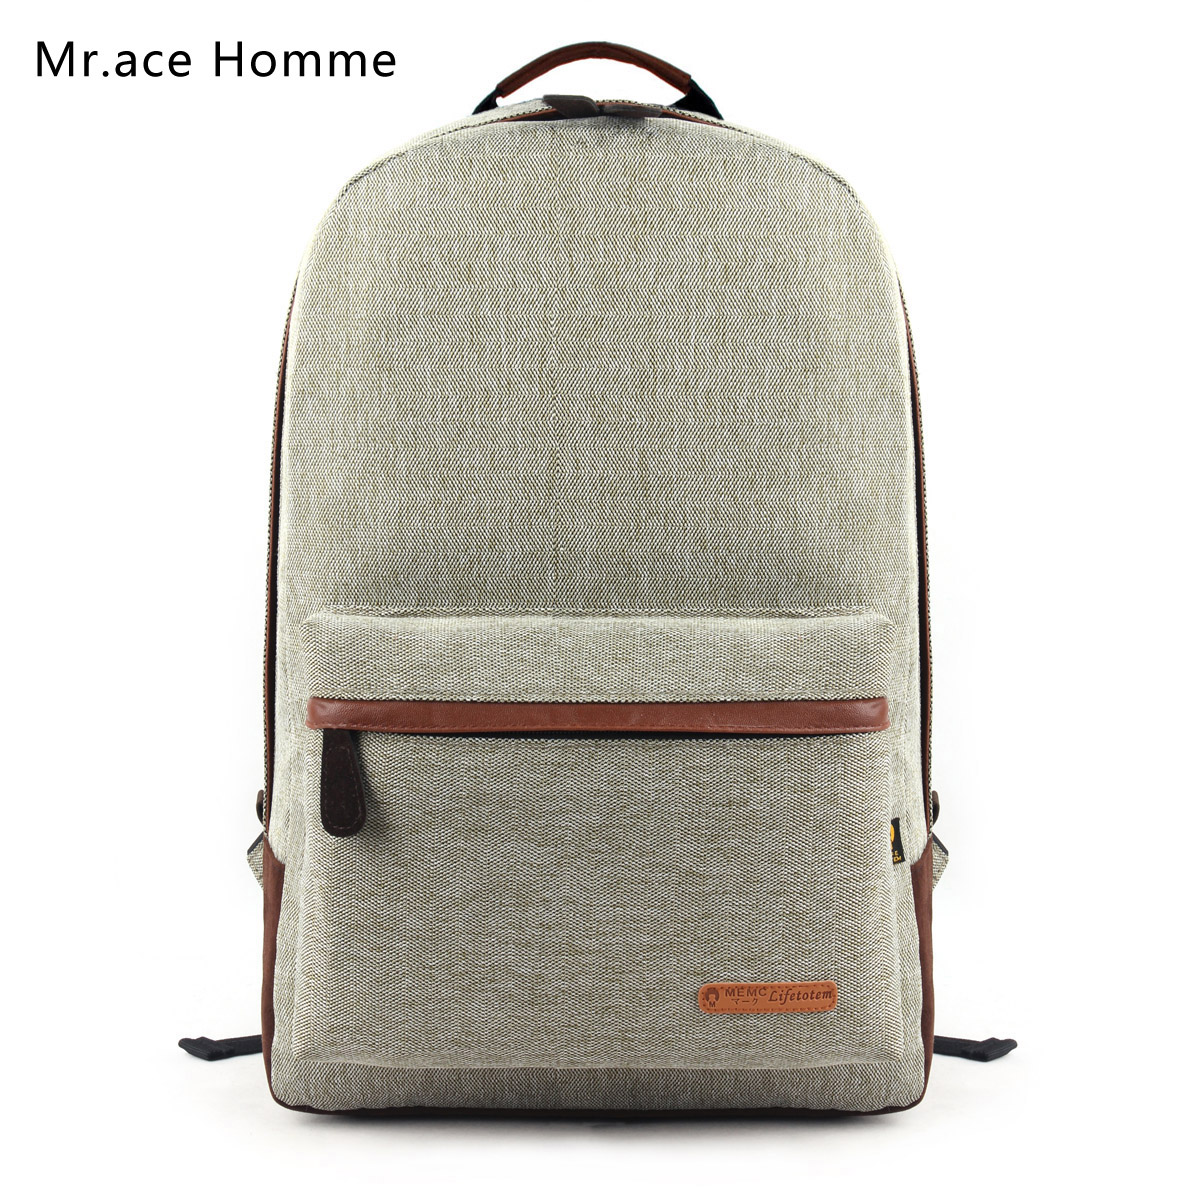 Cute Laptop Backpacks rJ3jX2iY